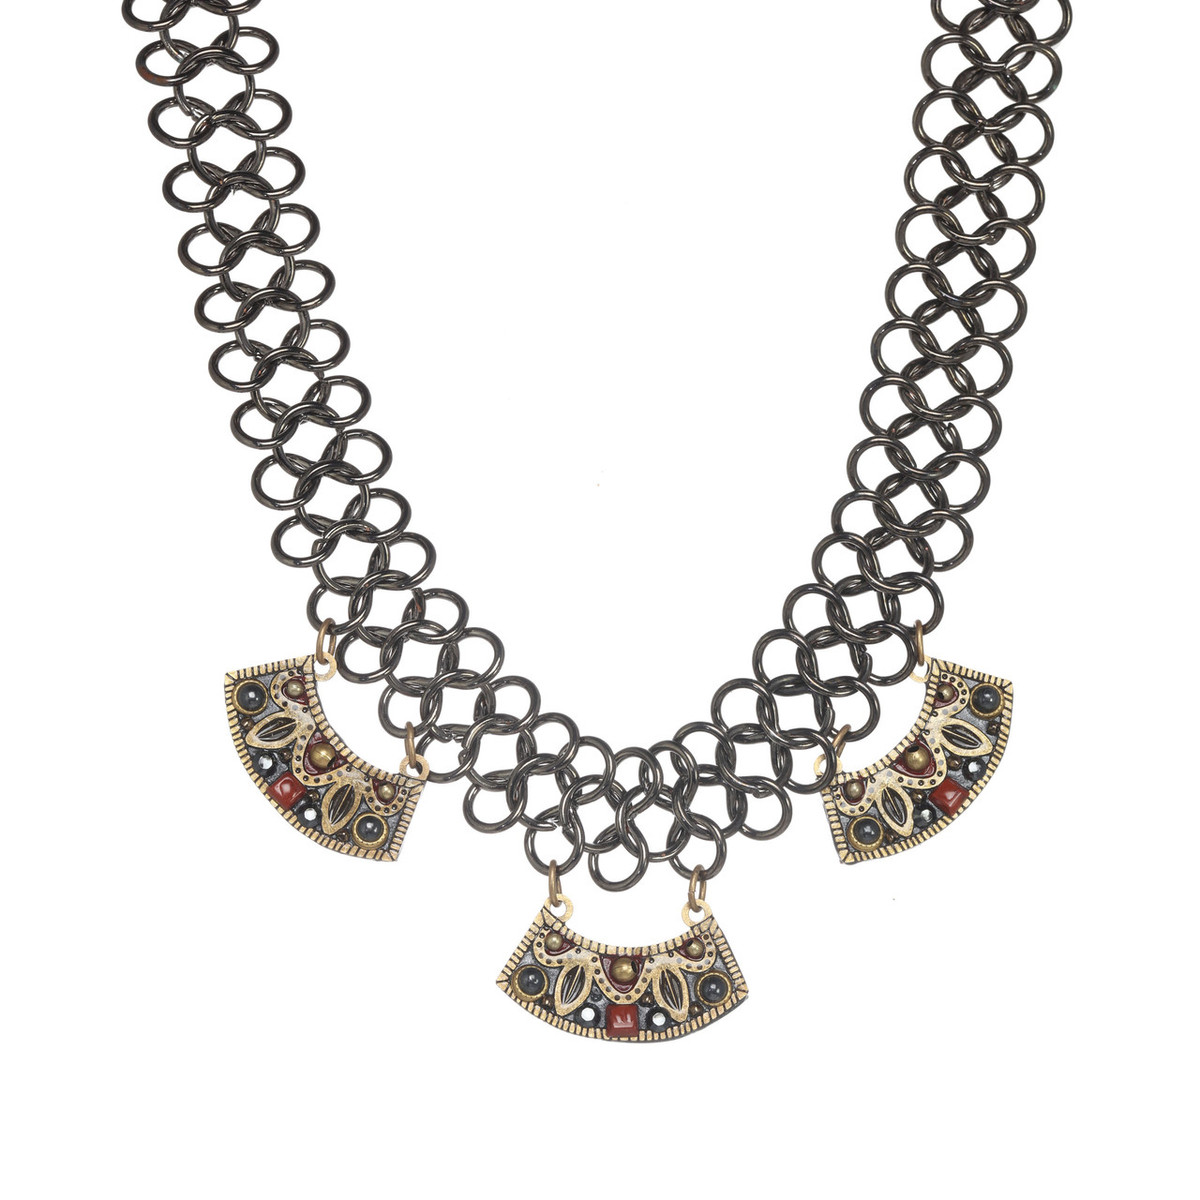 Canyon necklace by Michal Golan Jewelry